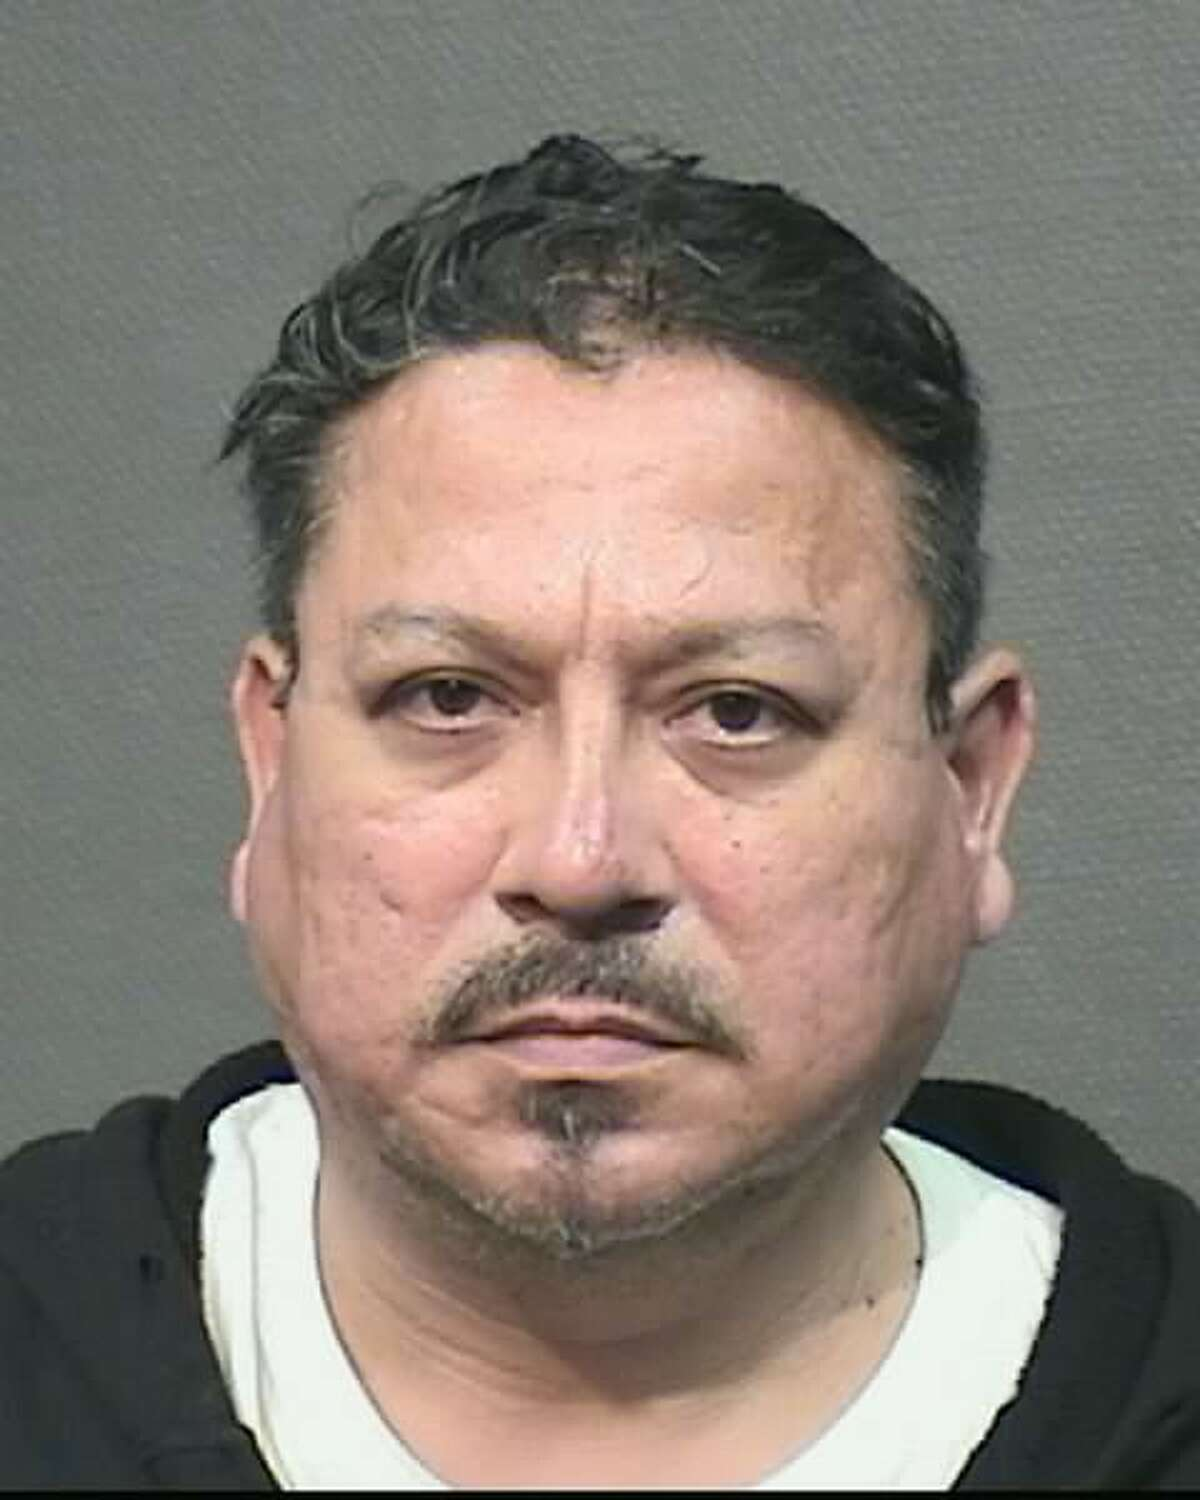 John Castillo, 46, was arrested and charged with murder following the shooting death of Lynda Polomo Sept. 17. Swipe through to read about other murders in Houston in 2017.